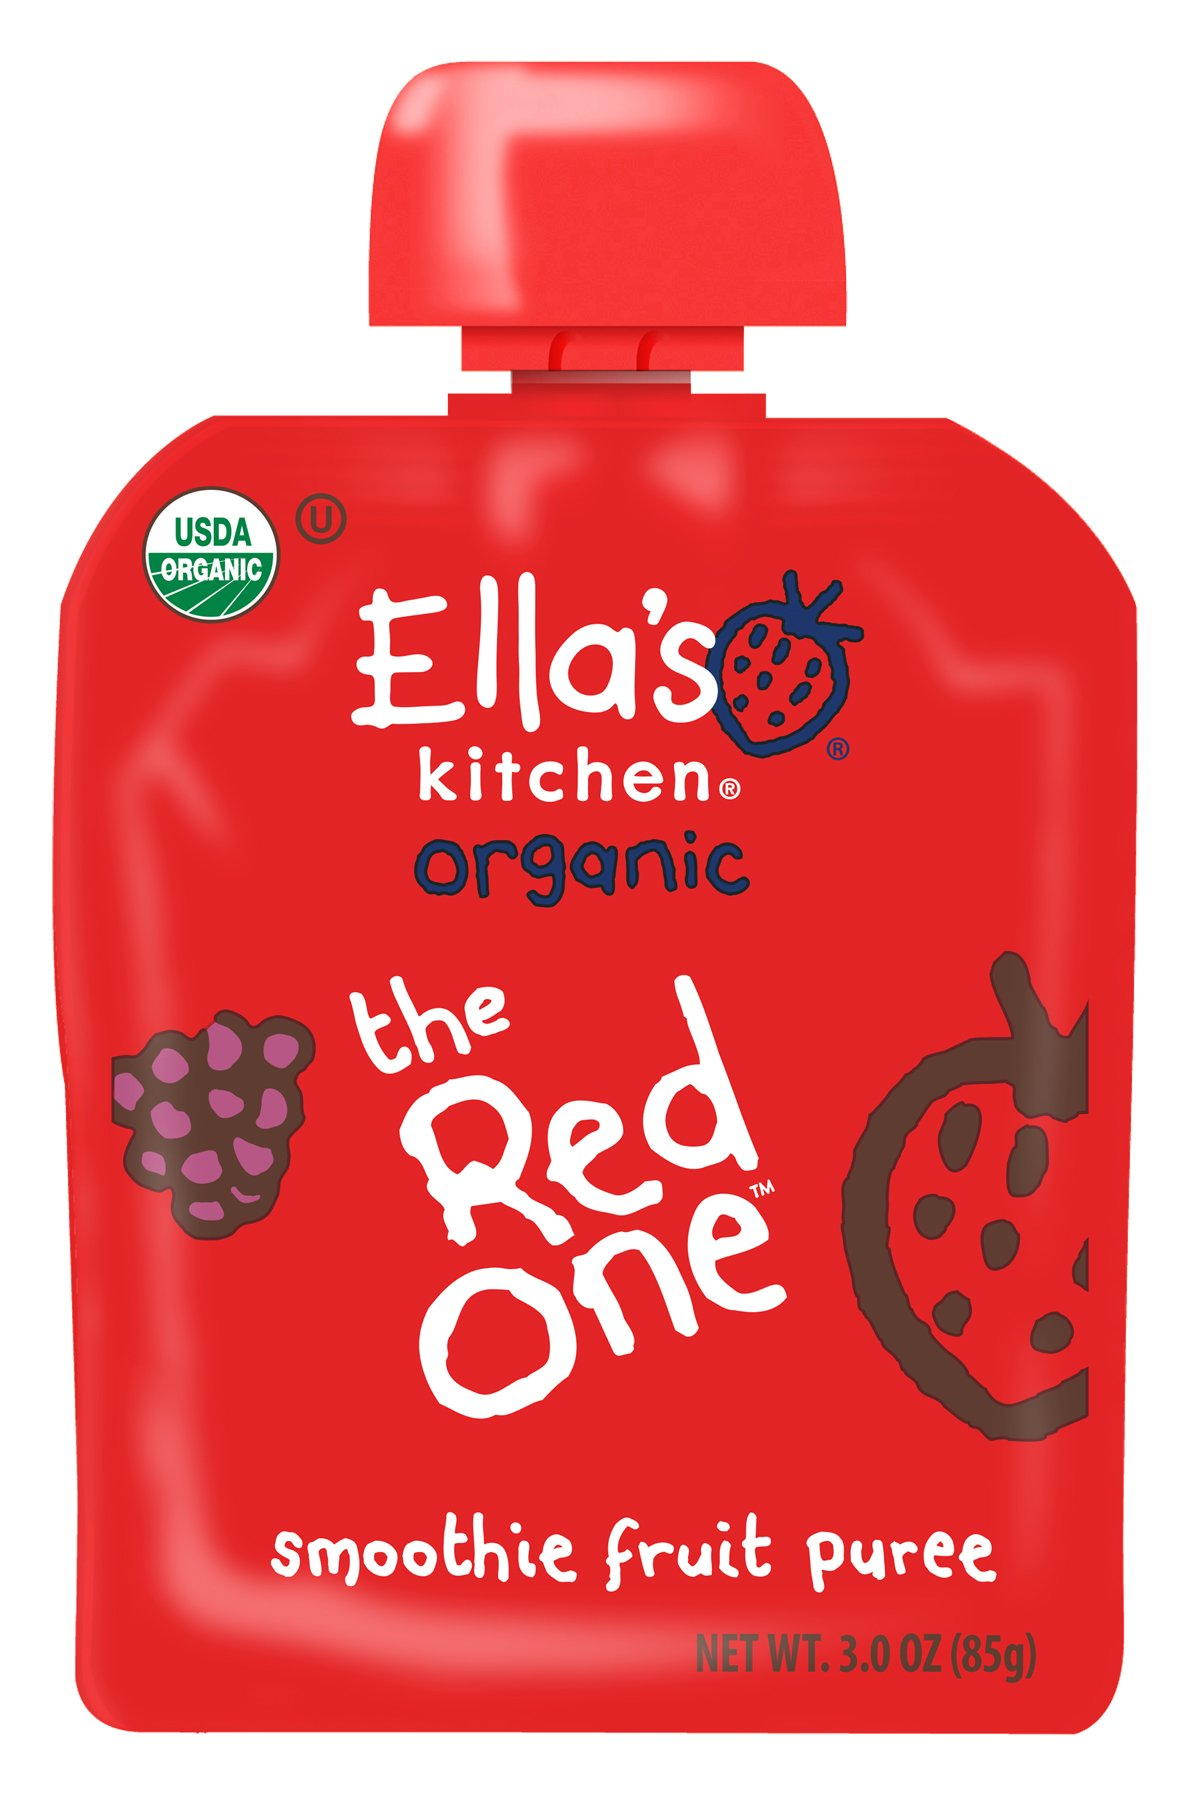 Ella's Kitchen Organic 6+ Months Baby Food,Smoothie Fruit Puree, The Red One, 3 oz. Pouch (Pack of 6) by Ella's Ktichen